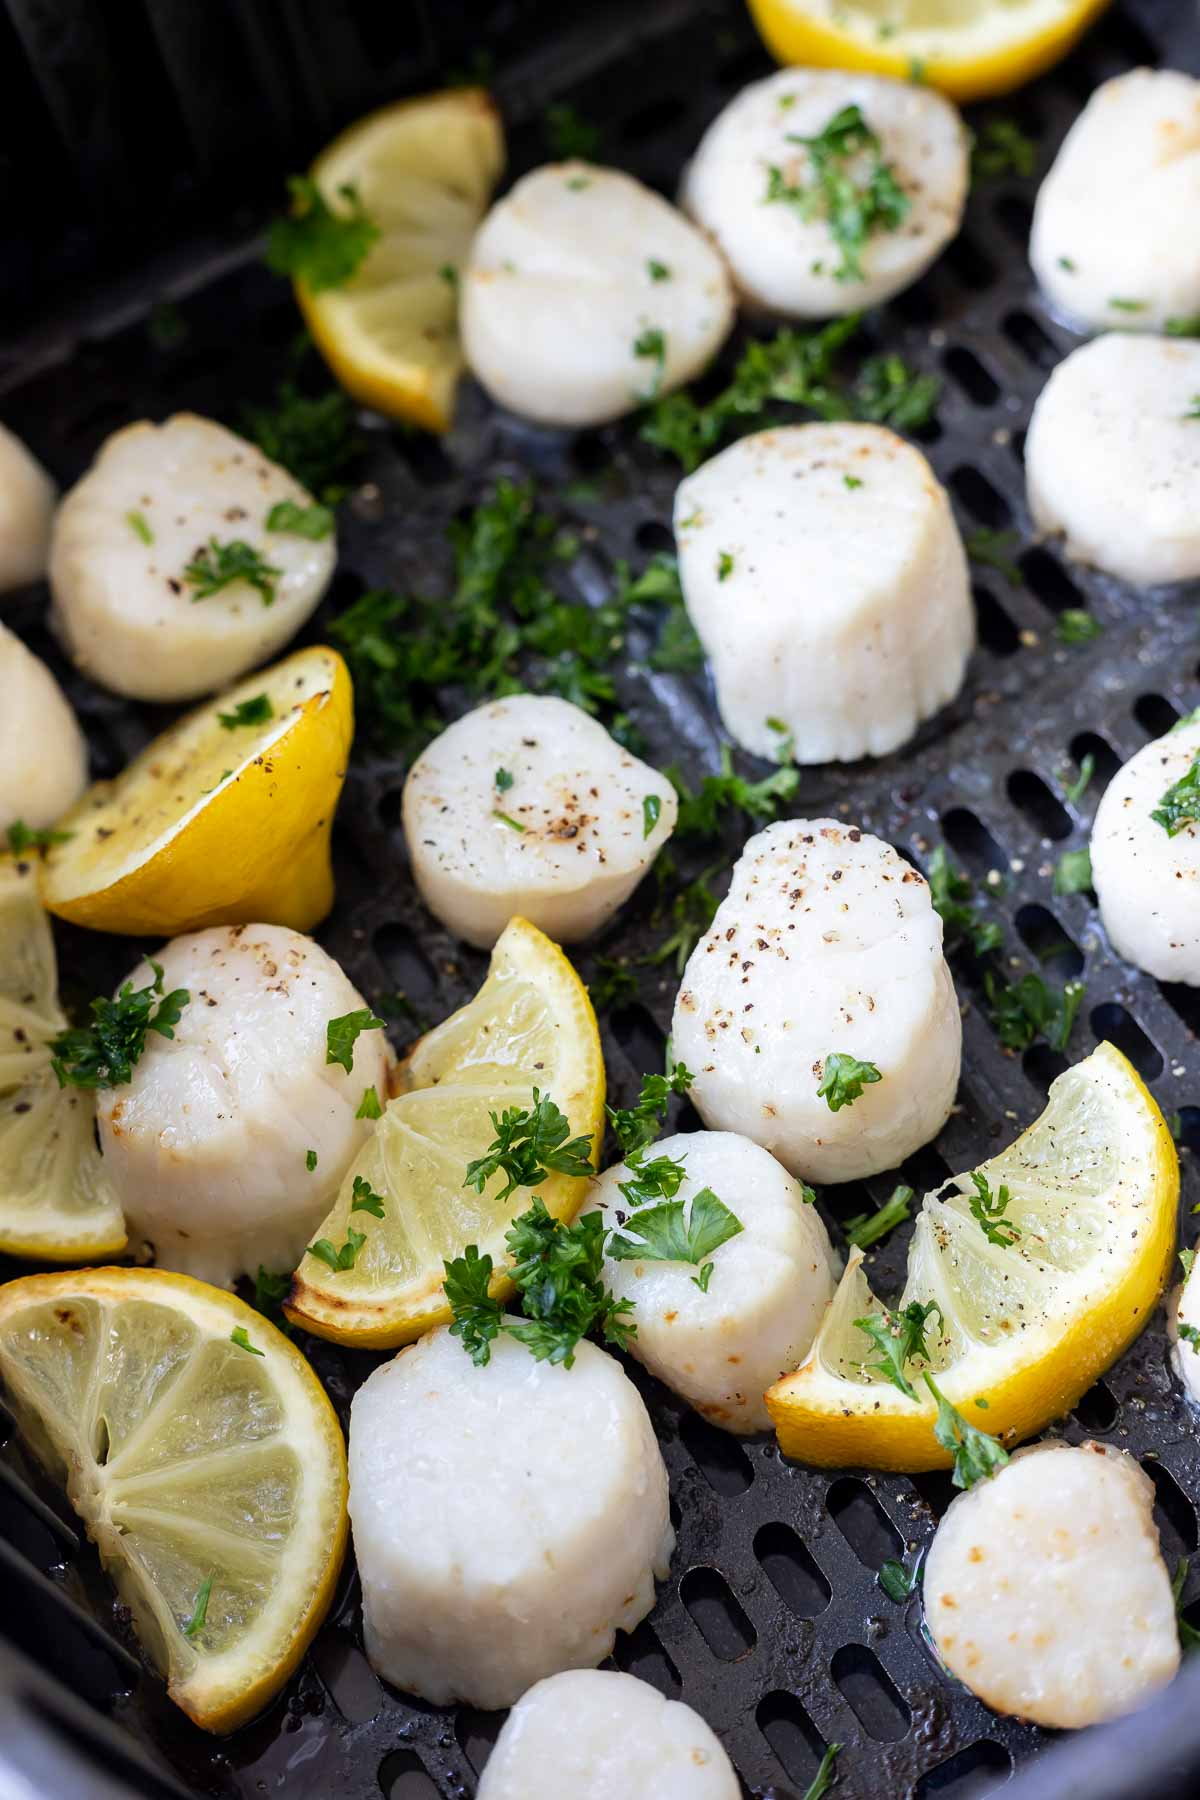 cooked scallops and lemons in air fryer basket